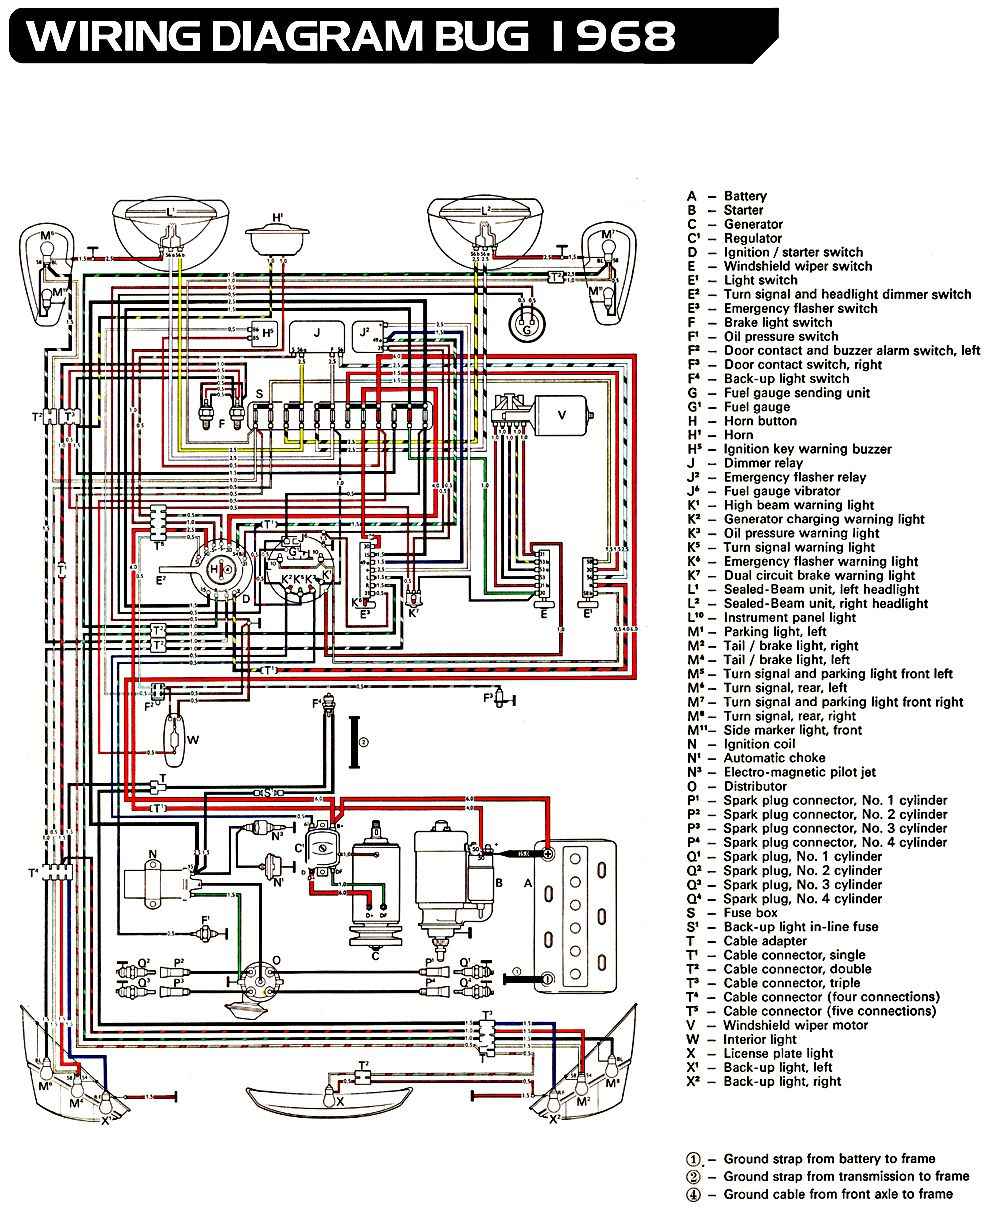 3a1908112d3826270ed5e3be362292bf vw bug ignition wiring diagram 73 vw wiring diagram free 73 vw beetle wiring diagram at nearapp.co